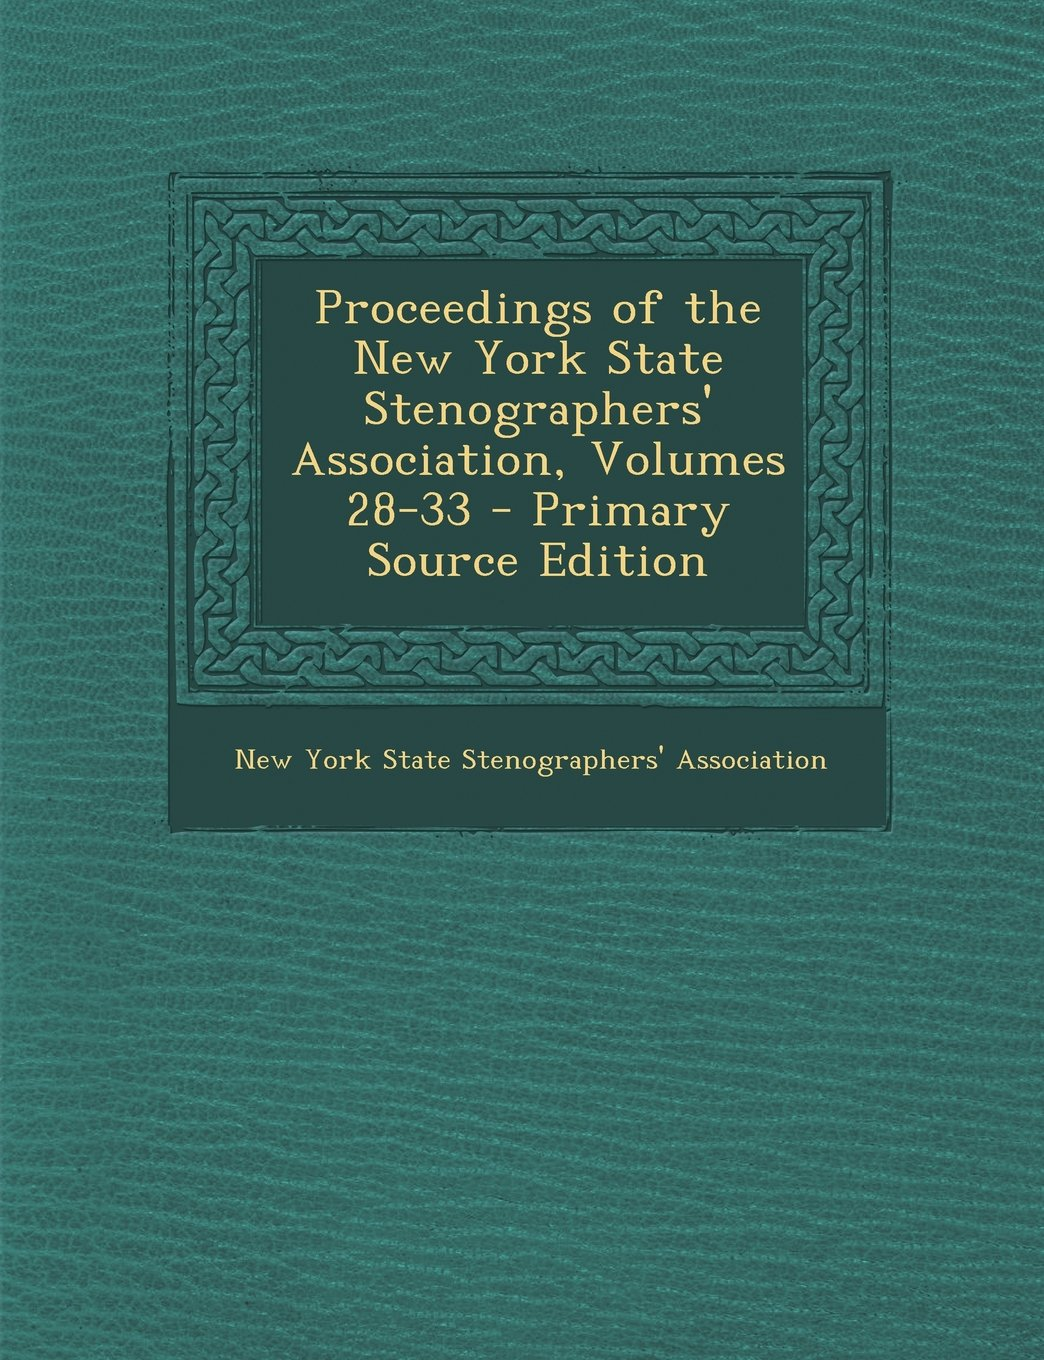 Download Proceedings of the New York State Stenographers' Association, Volumes 28-33 - Primary Source Edition ebook